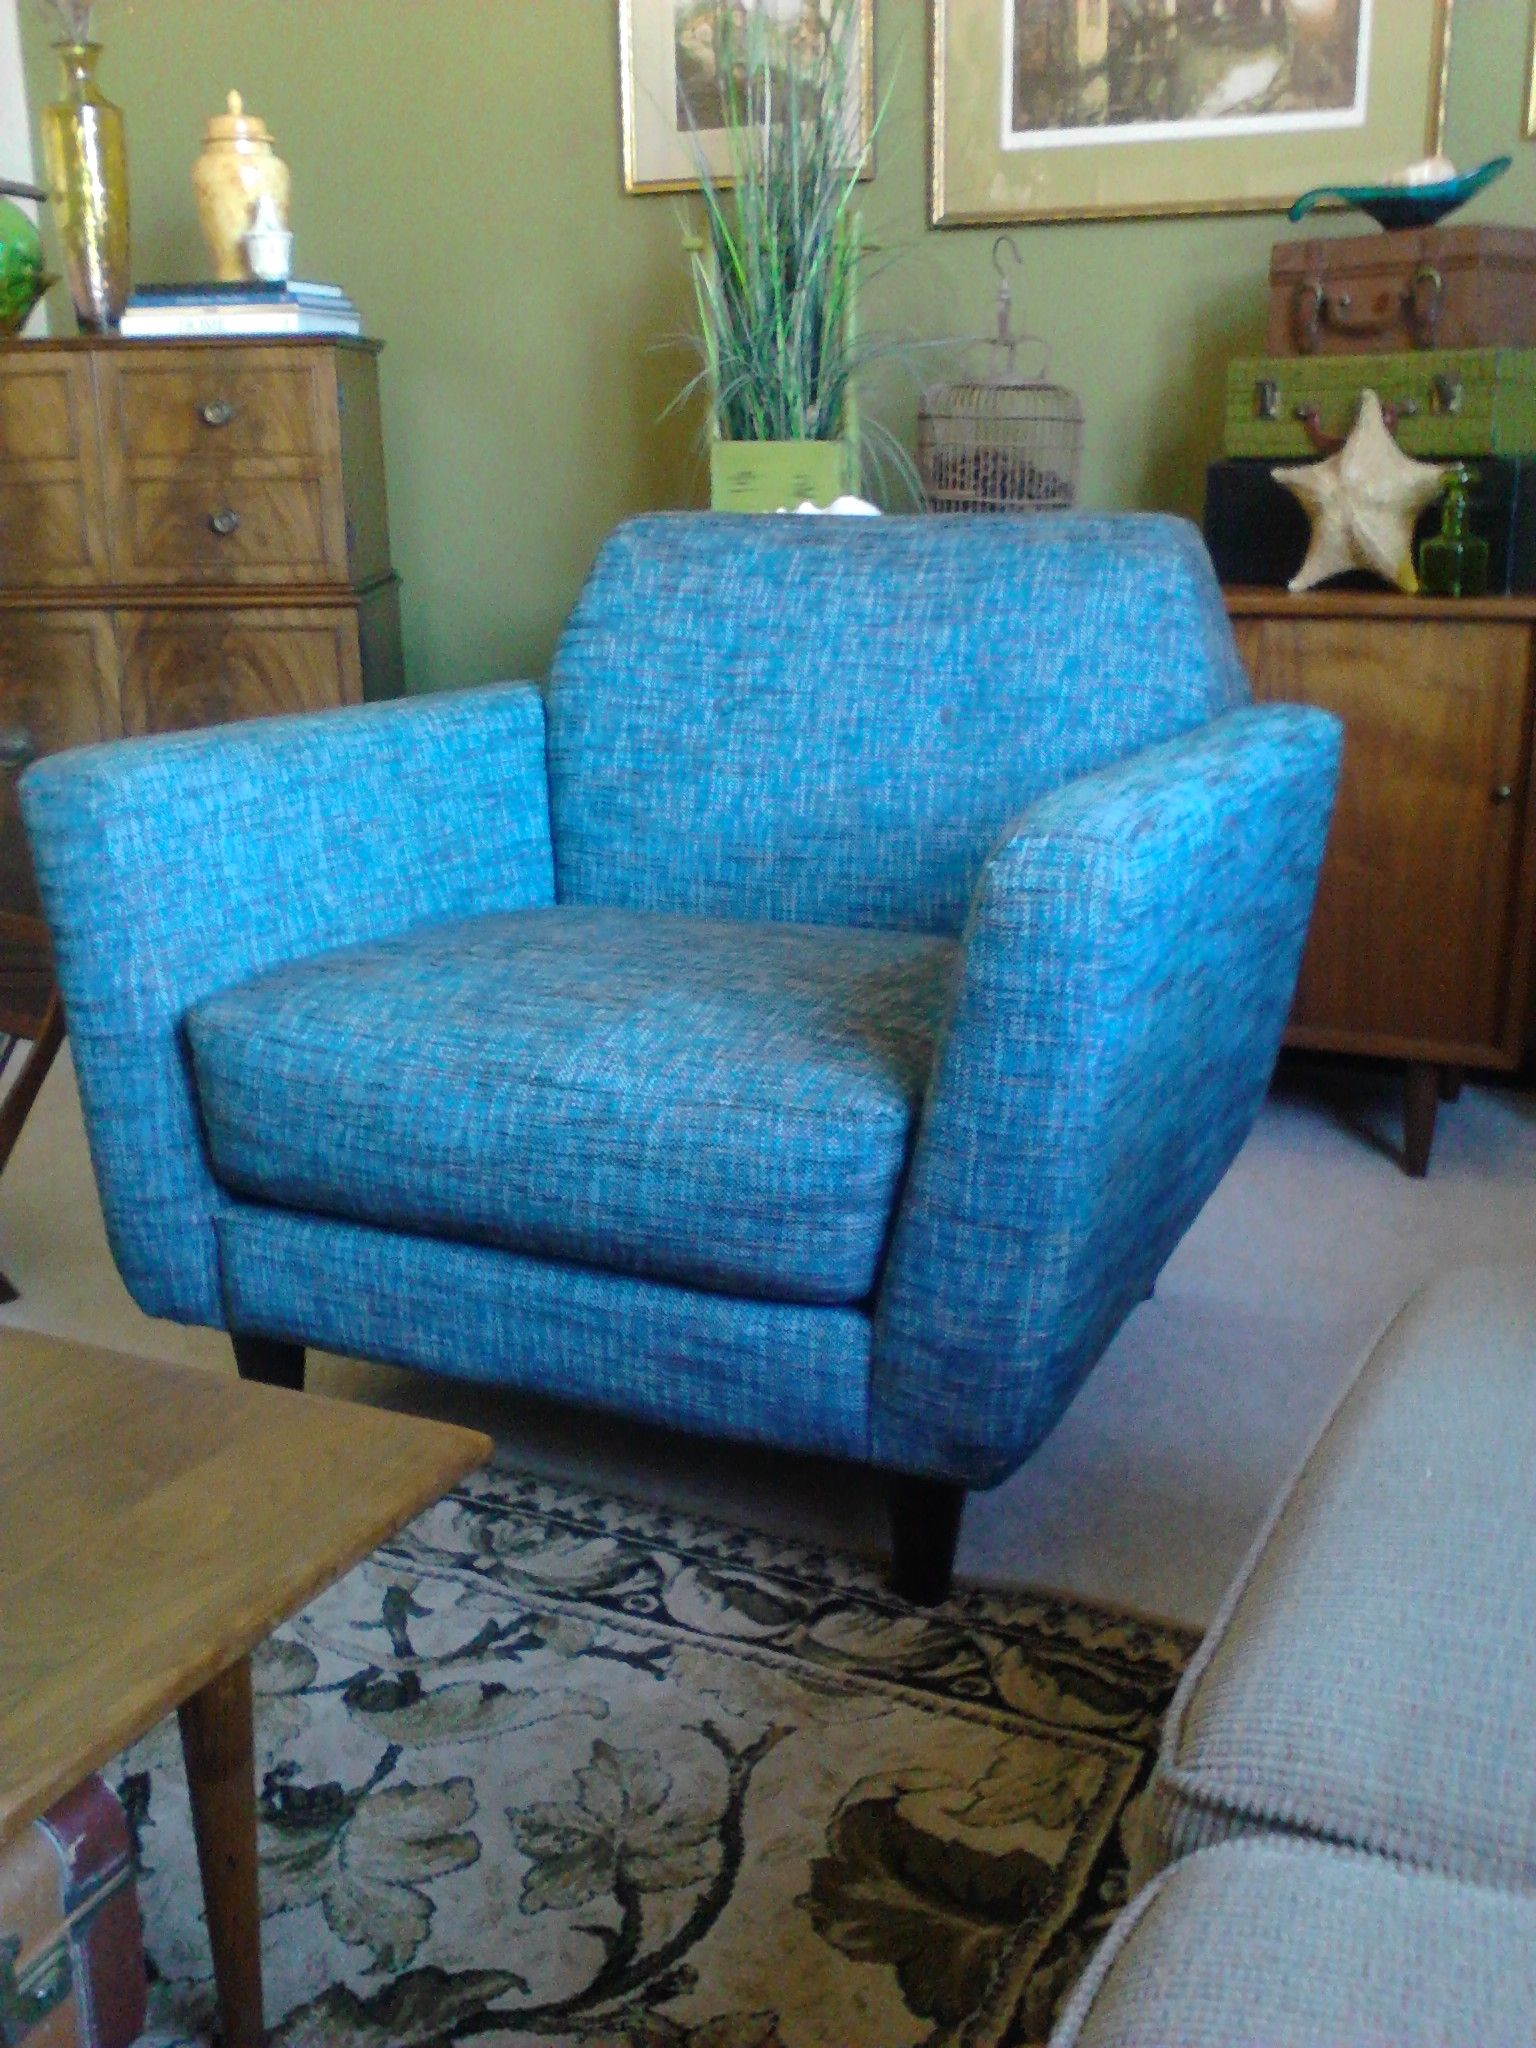 My new chair that looks 60's!